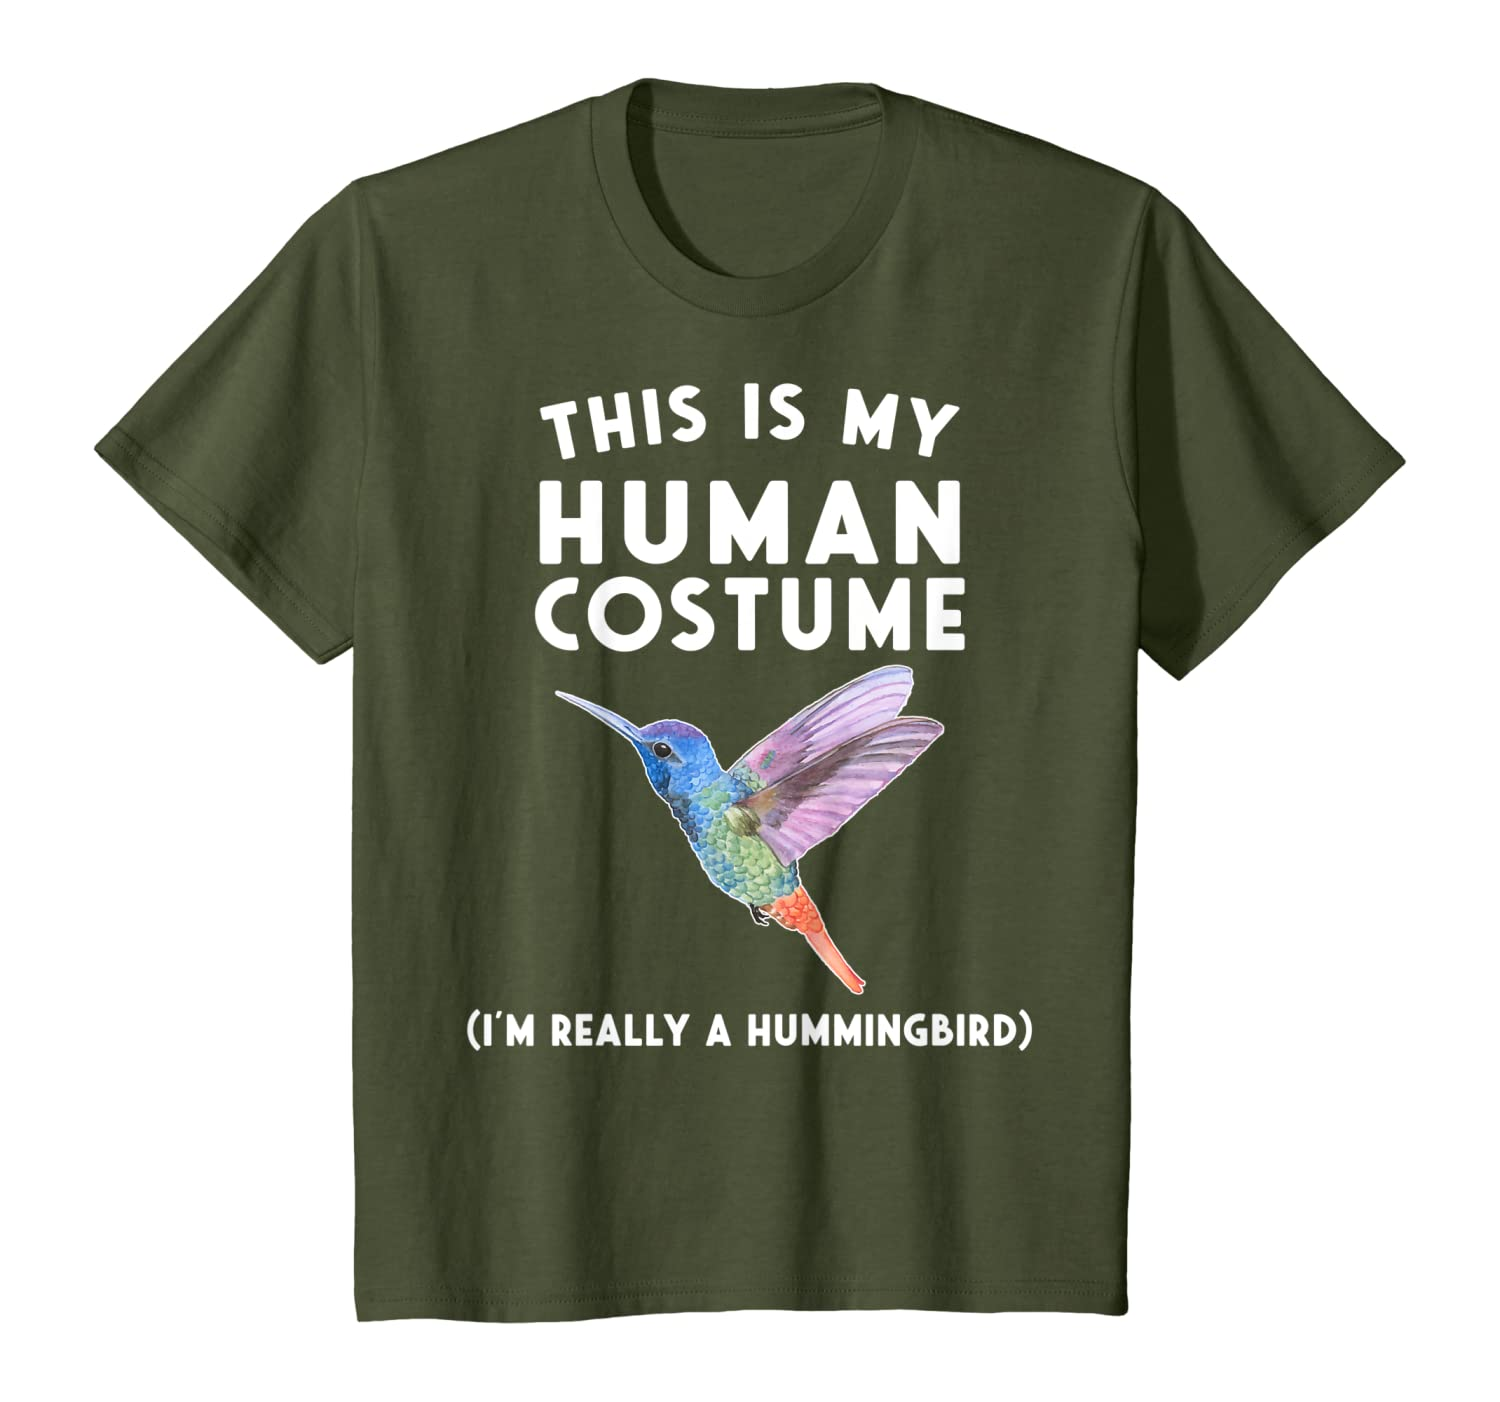 This is my Human Costume I'm Really a Hummingbird T-Shirt